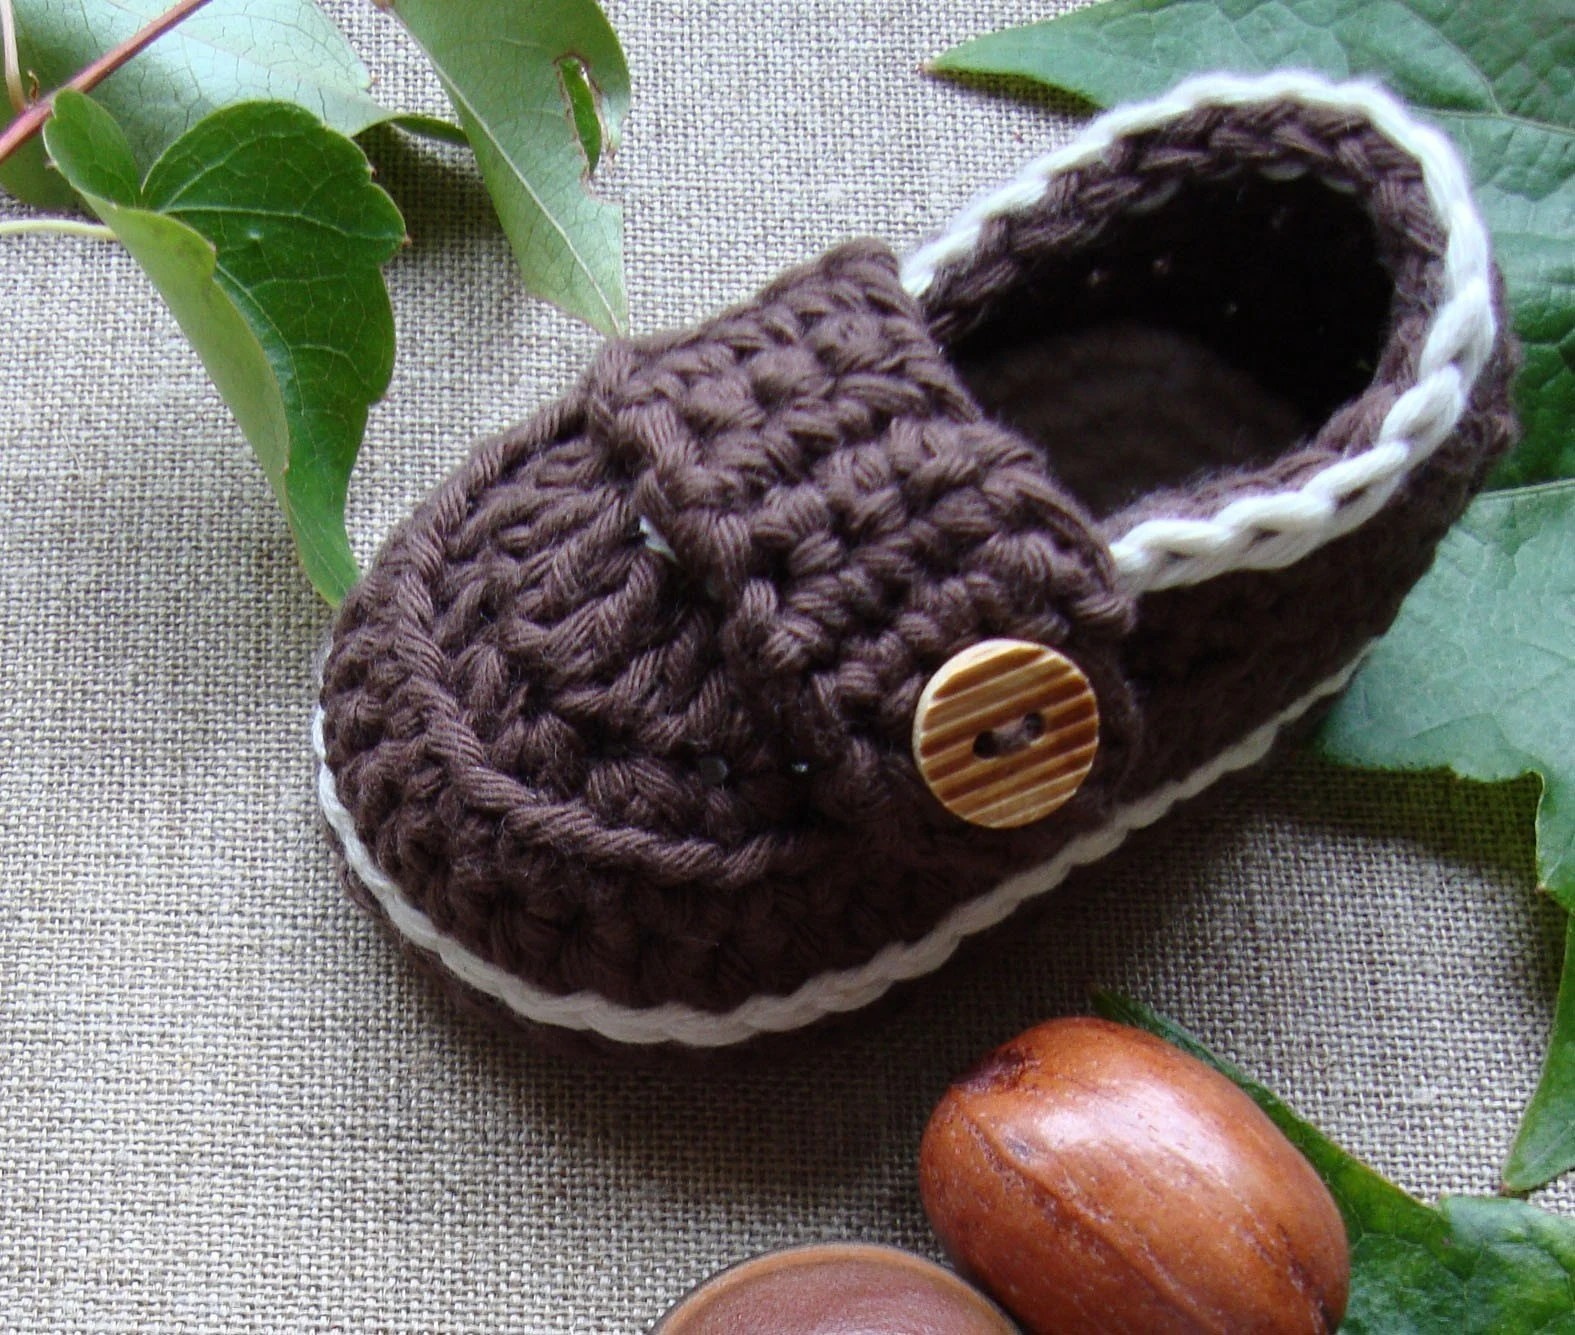 Handsome boy baby booties